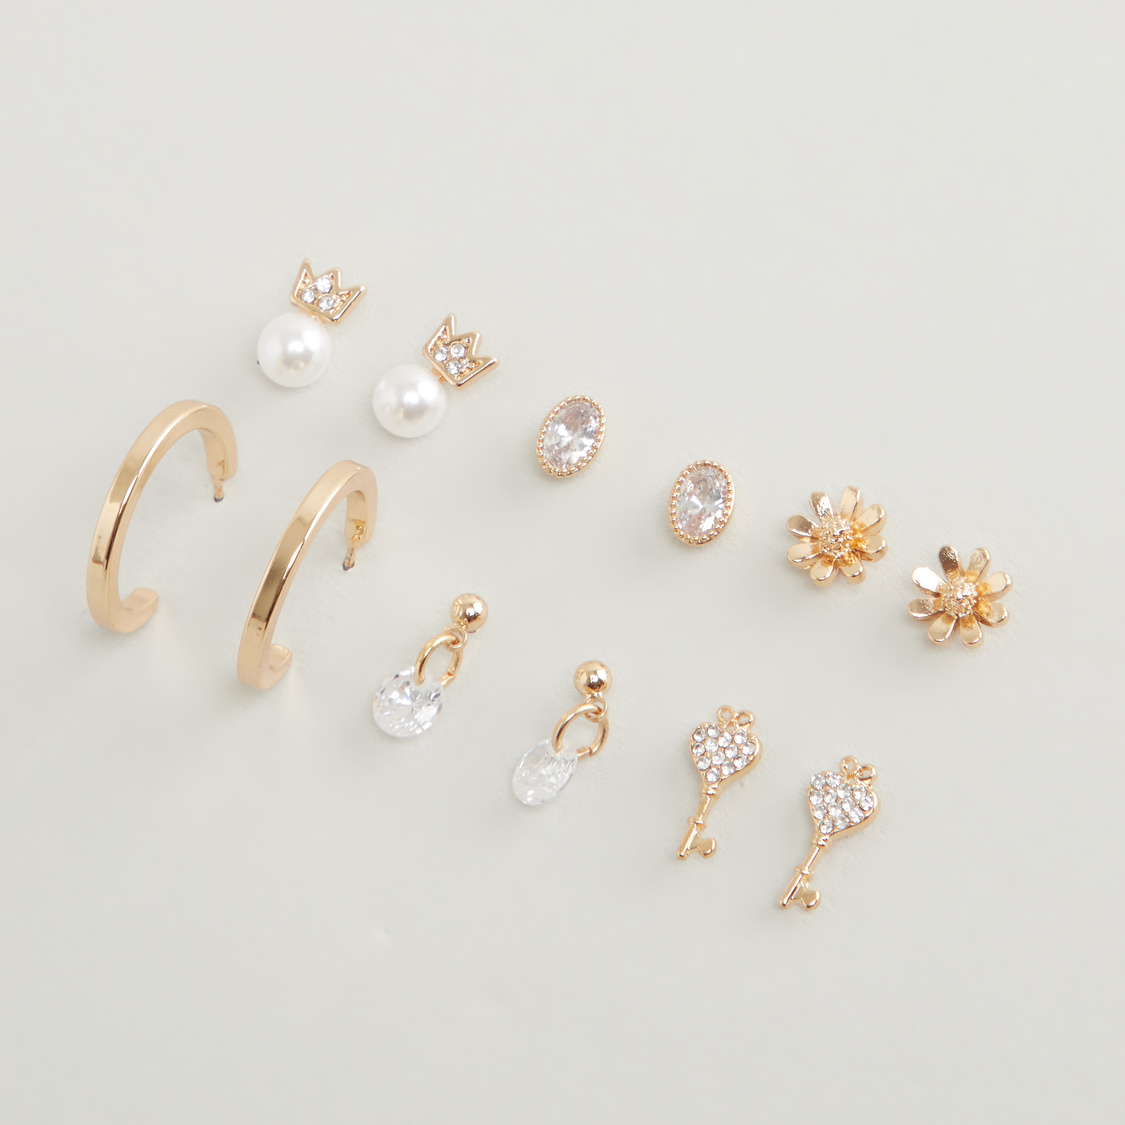 Set of 6 - Assorted Earrings